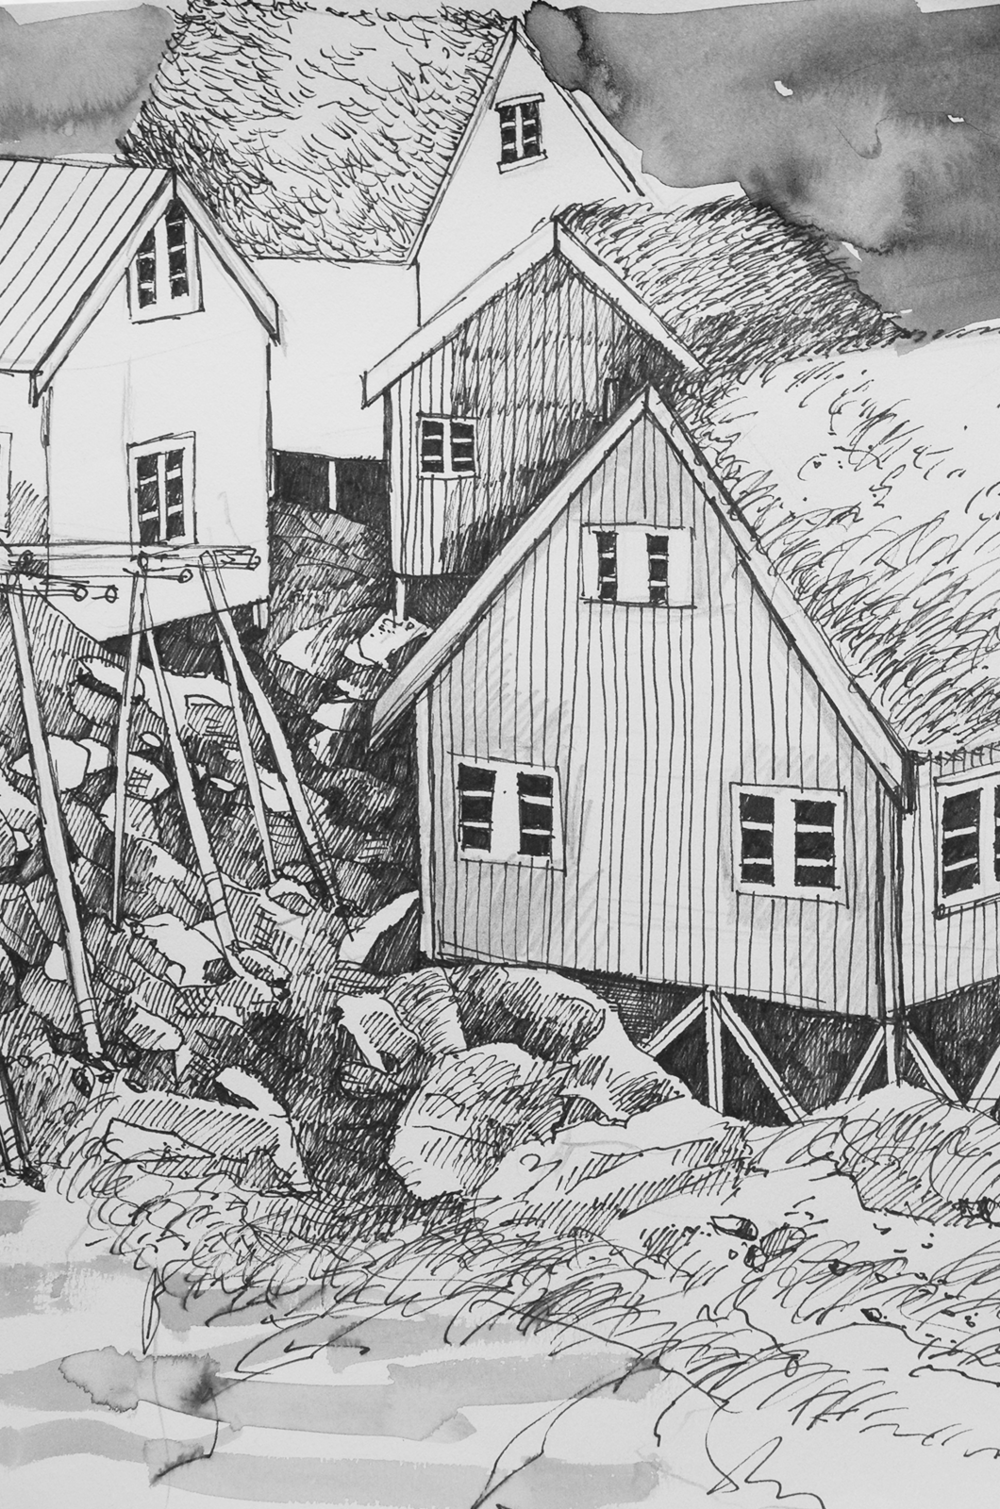 Swim-Wild-Illustrations---Houses-in-Reine (1).png